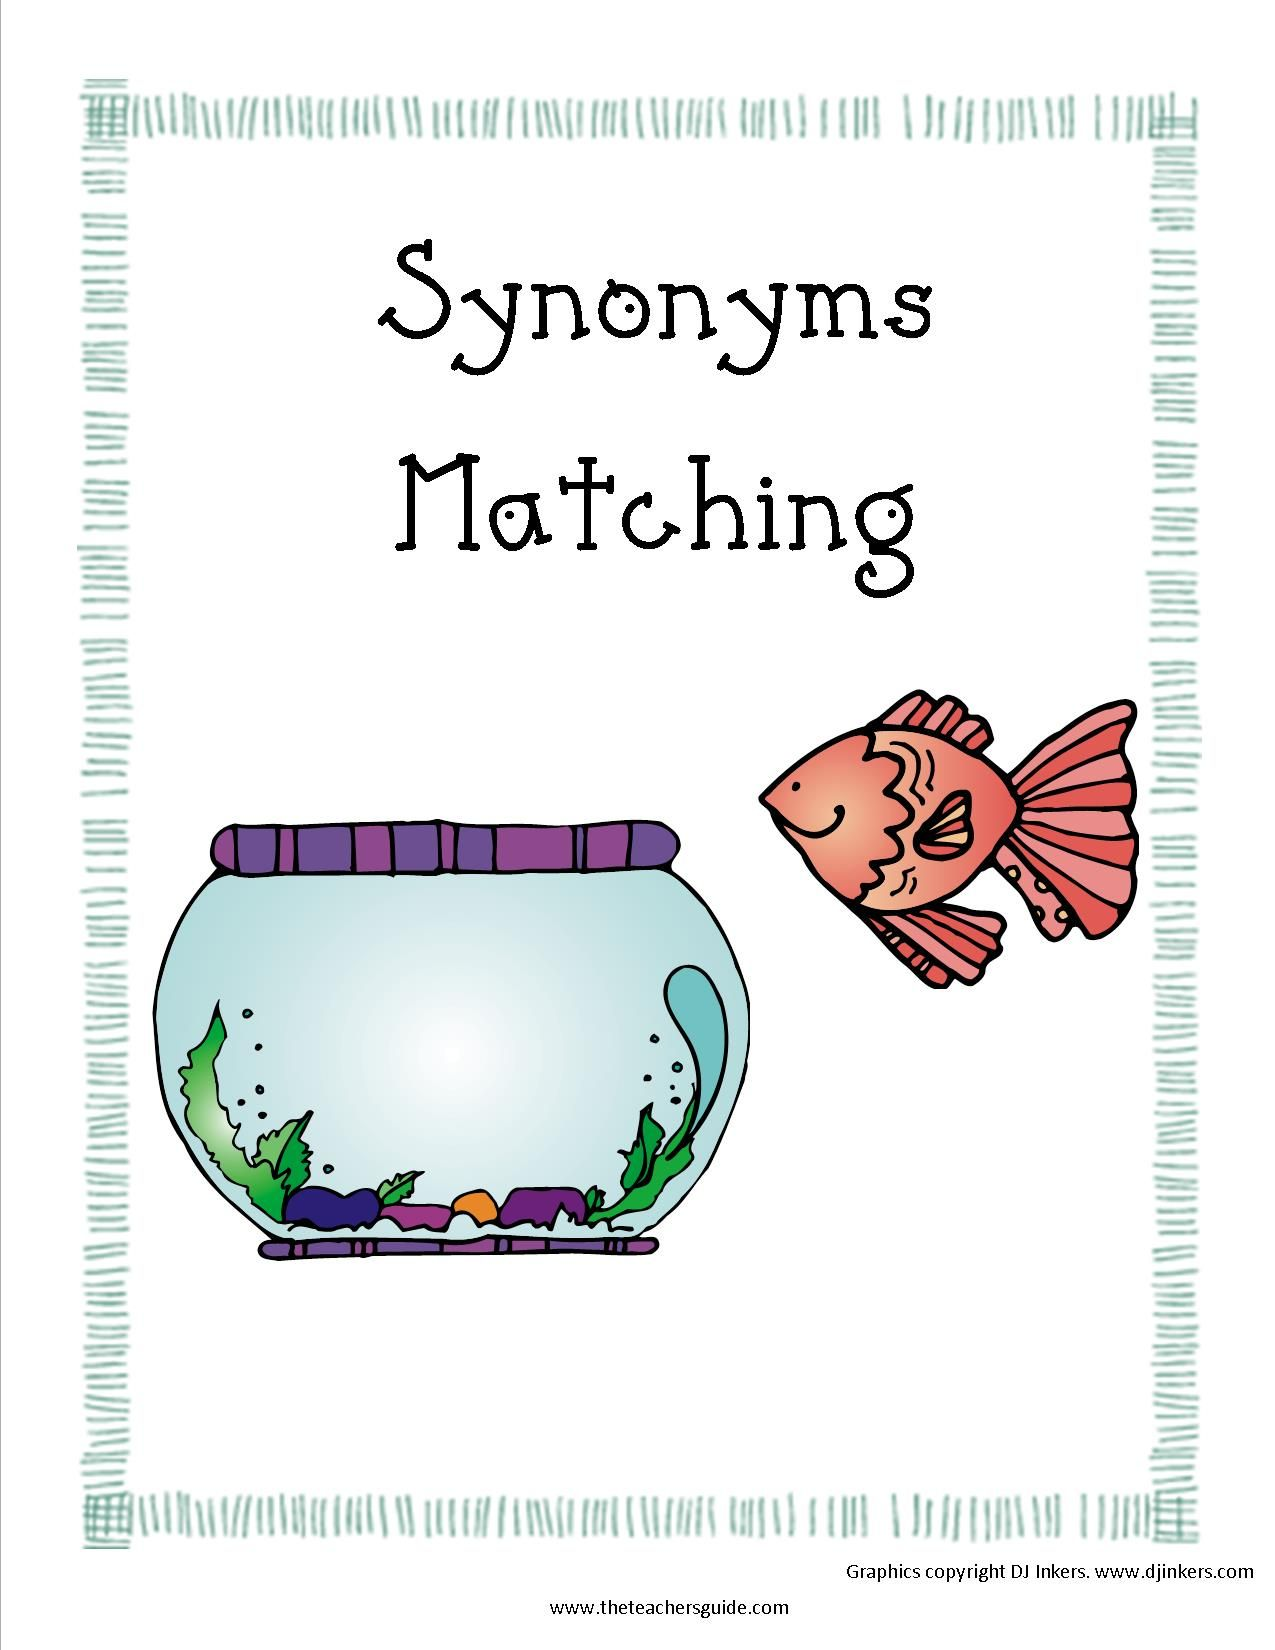 Synonyms Matching Game Printout